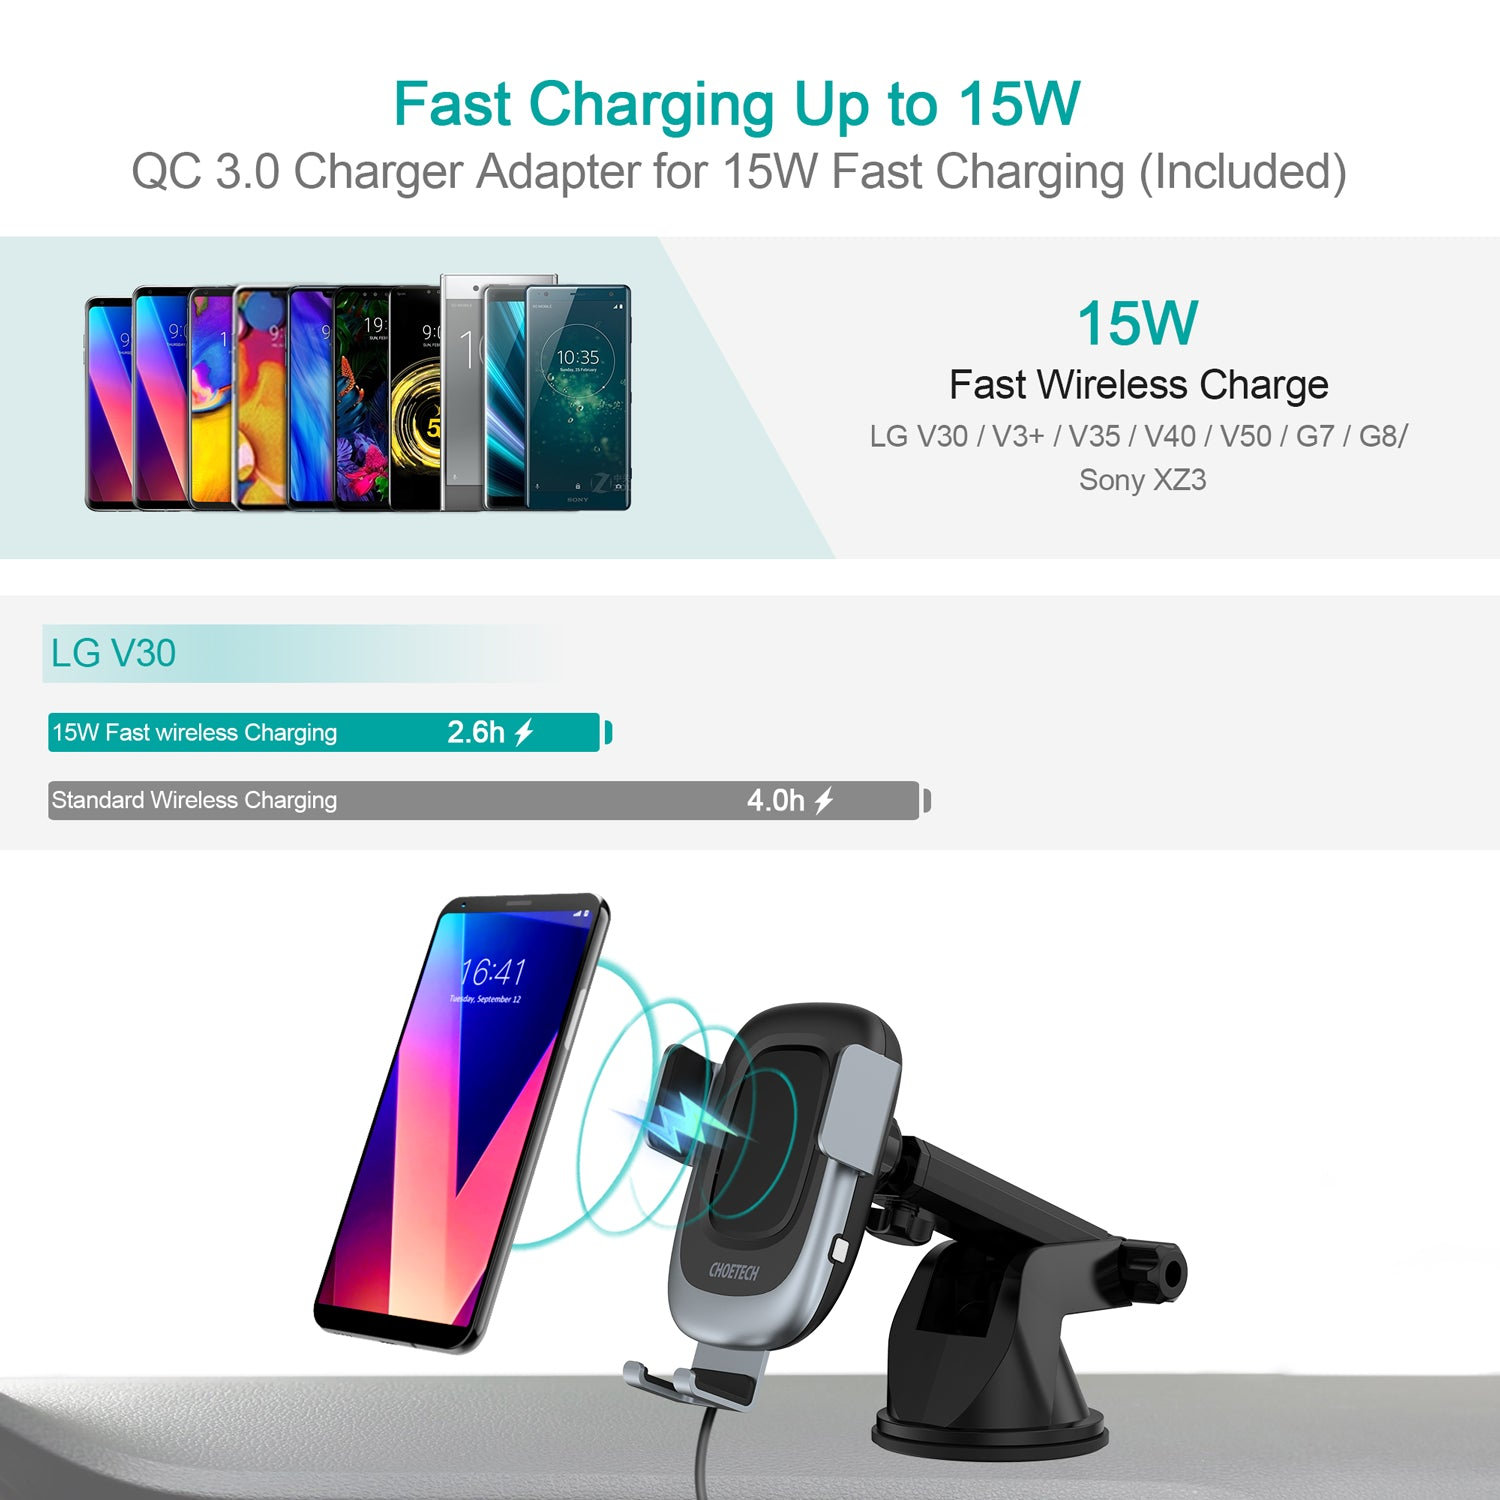 T542-S Choetech Wireless Car Charger,15W USB C Qi Fast Charging Auto-Clamping Car Mount, Windshield Dashboard Phone Holder